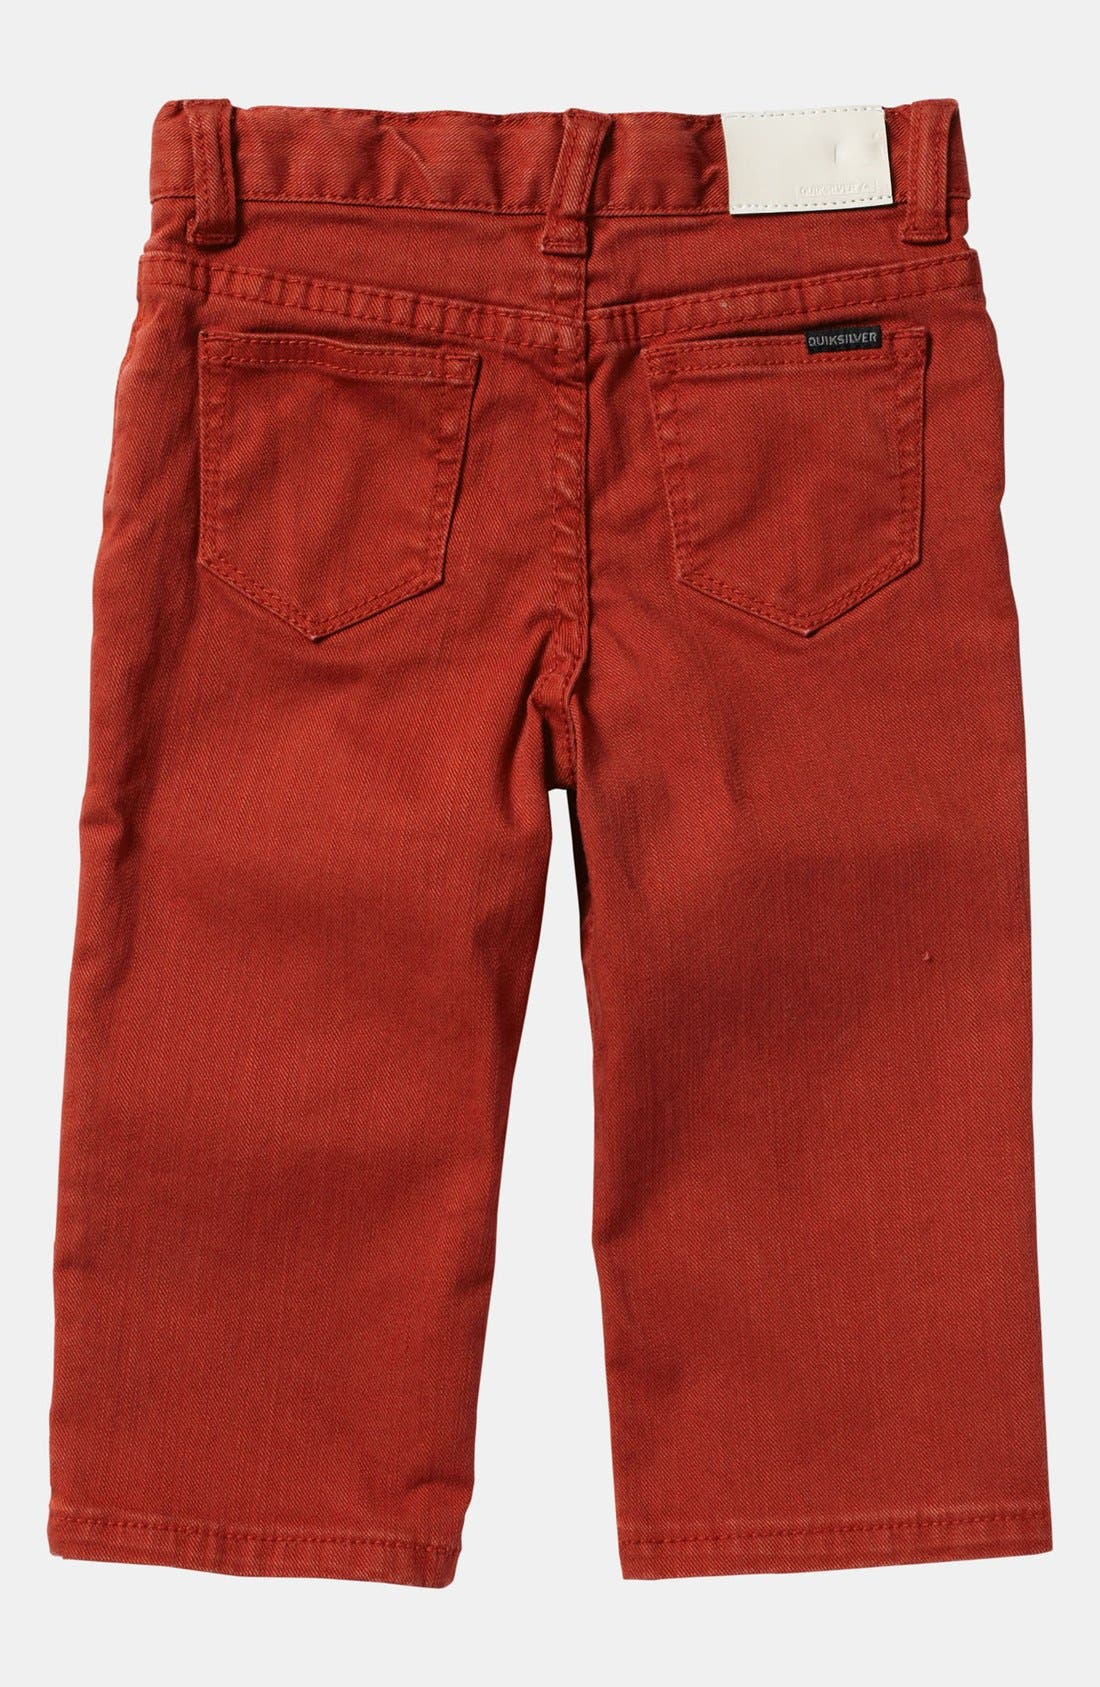 Alternate Image 1 Selected - Quiksilver 'Distortion' Slim Straight Leg Jeans (Toddler)